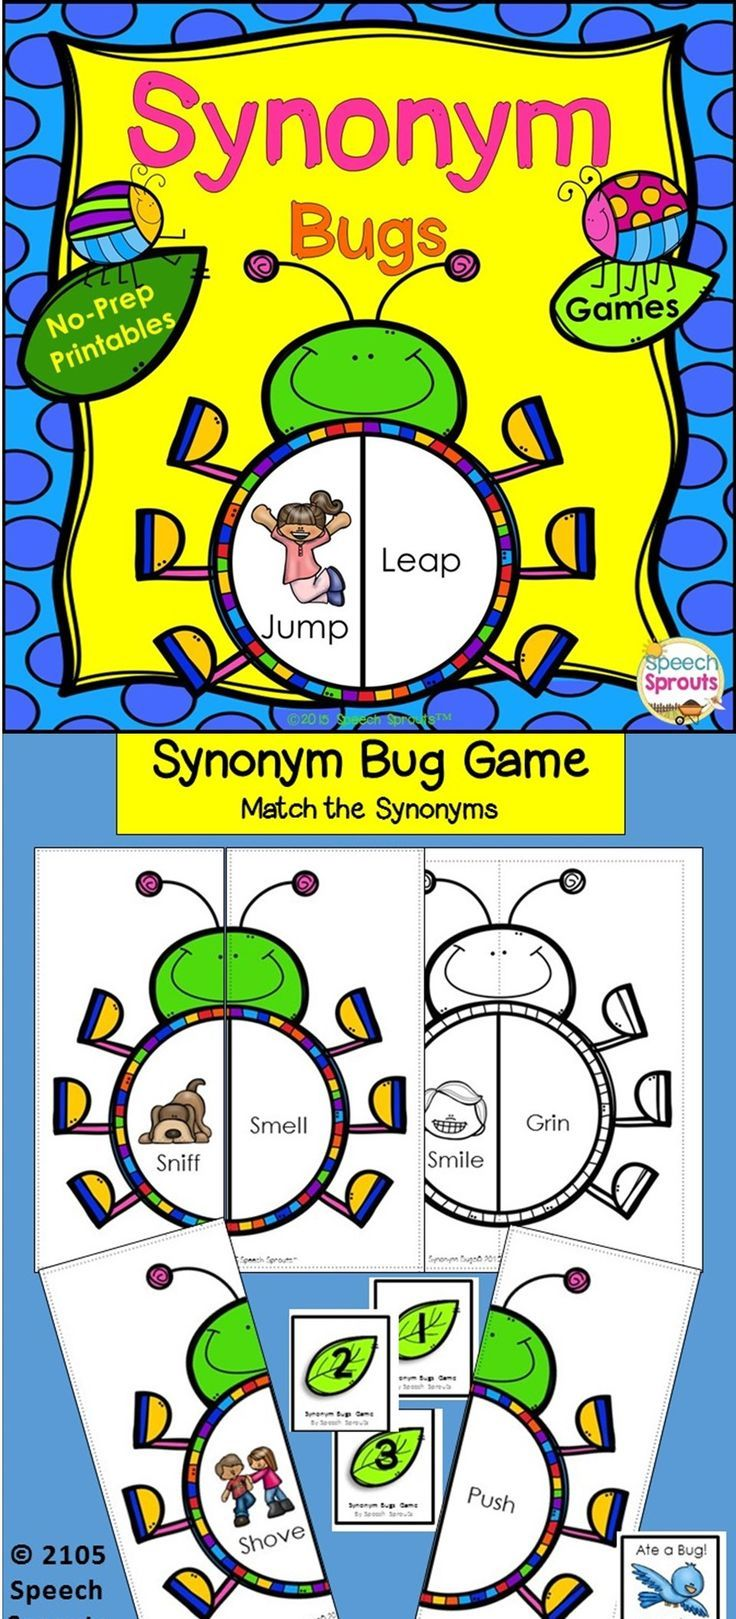 Call out a word, & students swat the bug with the synonym! Have your kids buzzing about synonyms this spring with these fun activities. Grab a flyswatter and be the first to swat the matching synonyms as you build your bug collection in the Synonym Swat Game! See how many bugs you can build in Synonym Bugs! Grab the hole puncher and eat through some leaves as you find synonyms in Synonym Crunch! 15 no-prep interactive activities for your classroom/ speech therapy room, or home practice